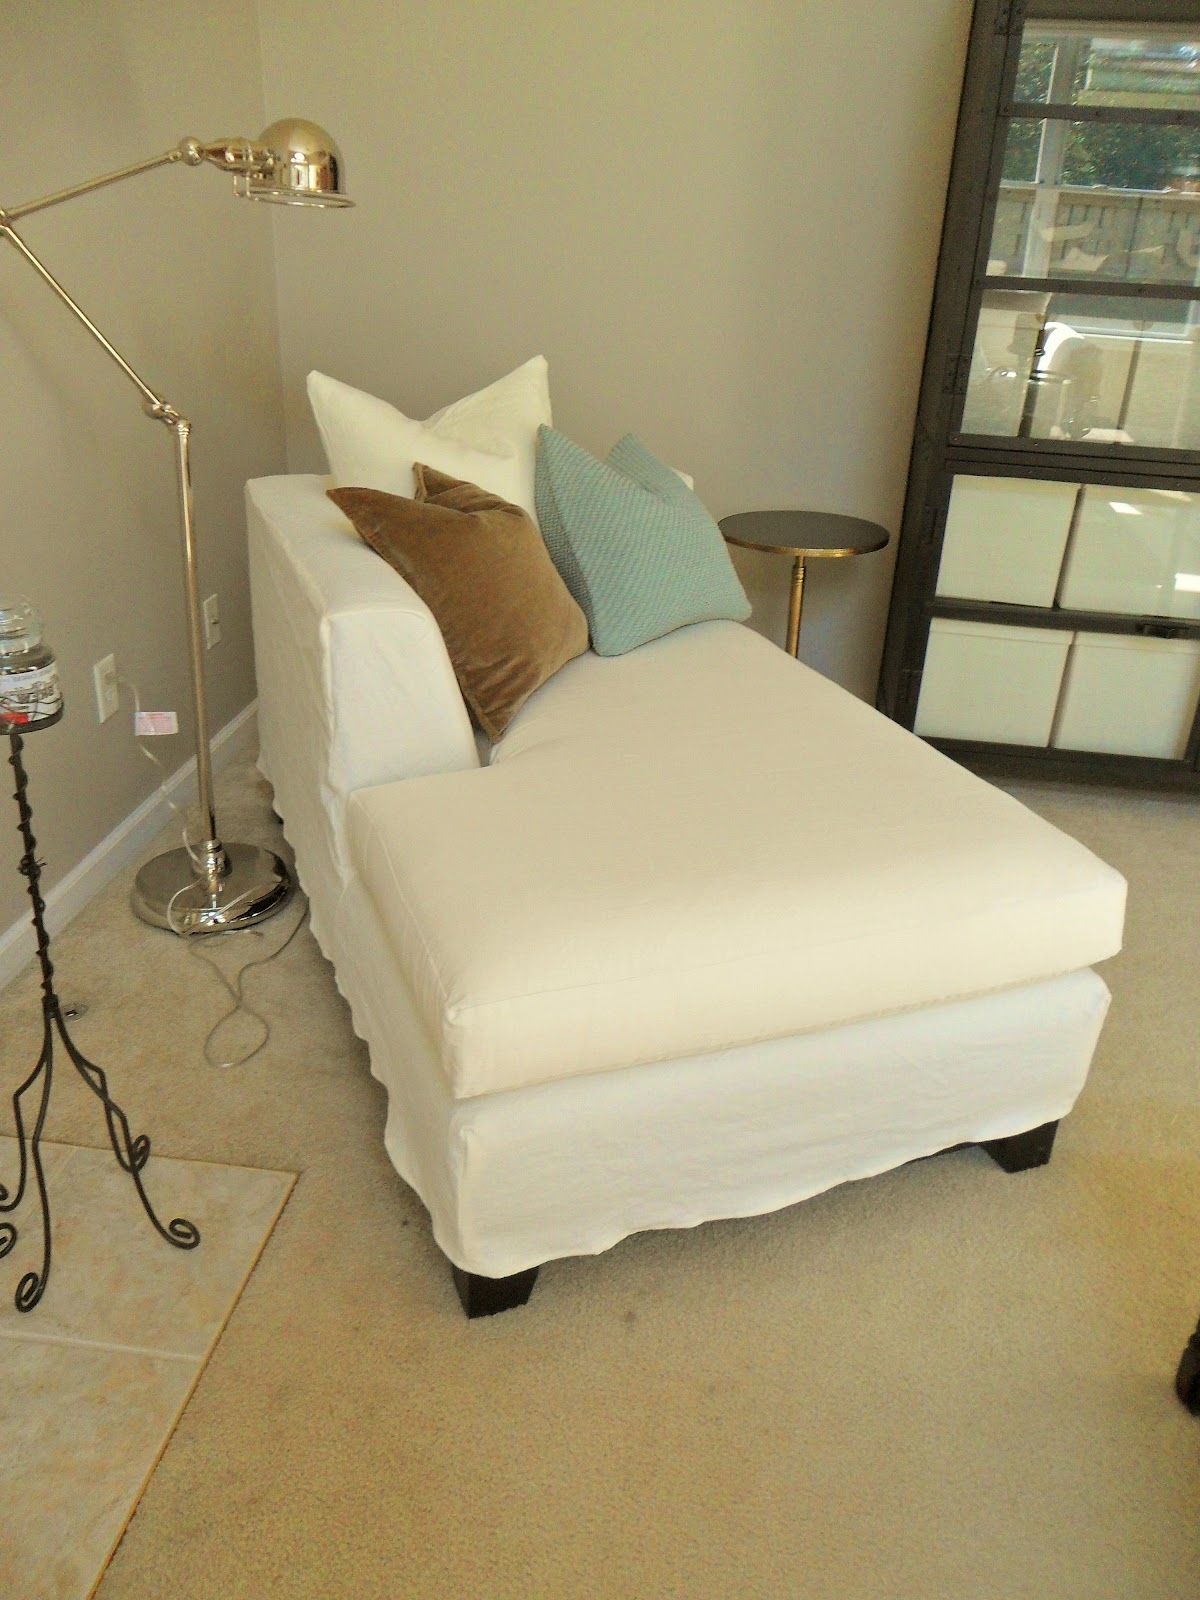 Chaise Lounge Slipcovers Images – Home Furniture Ideas For Preferred Slipcovers For Chaise Lounge (View 2 of 15)